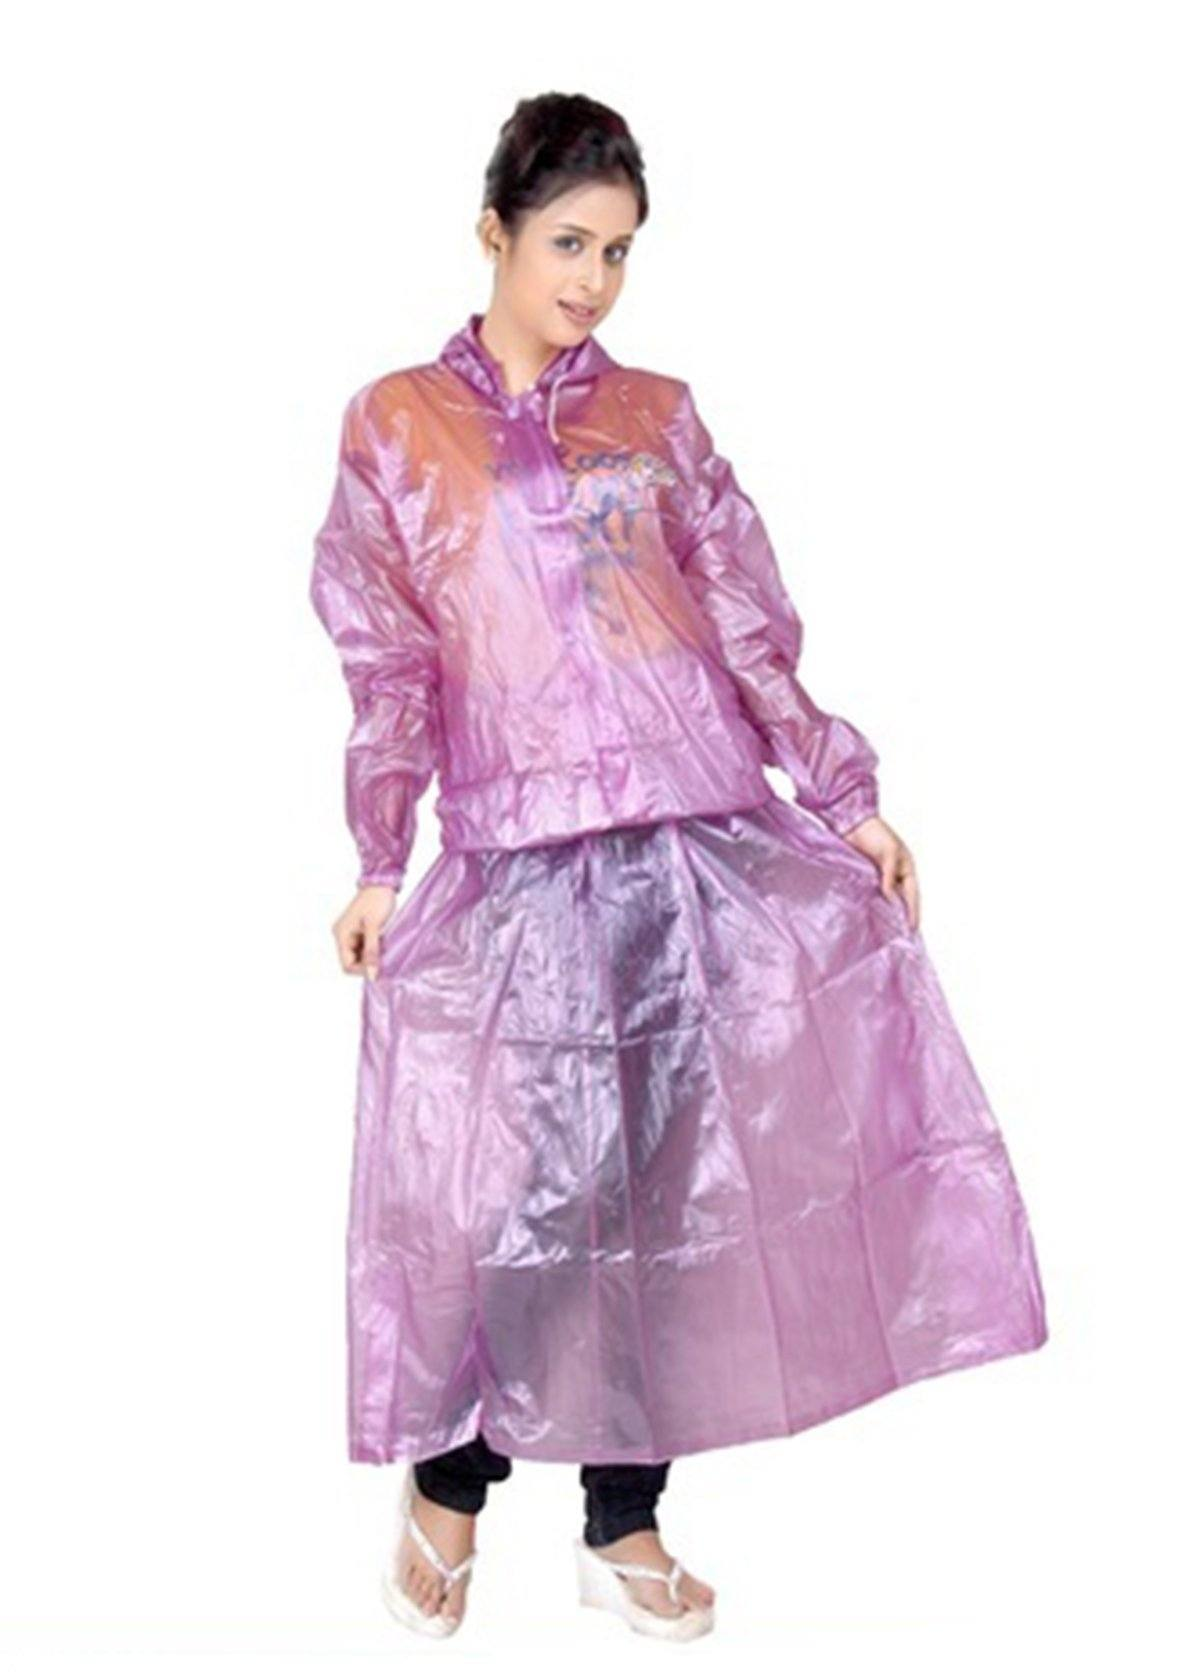 Romano nx Waterproof Rain Skirt and Rain Jacket for Women romanonx.com